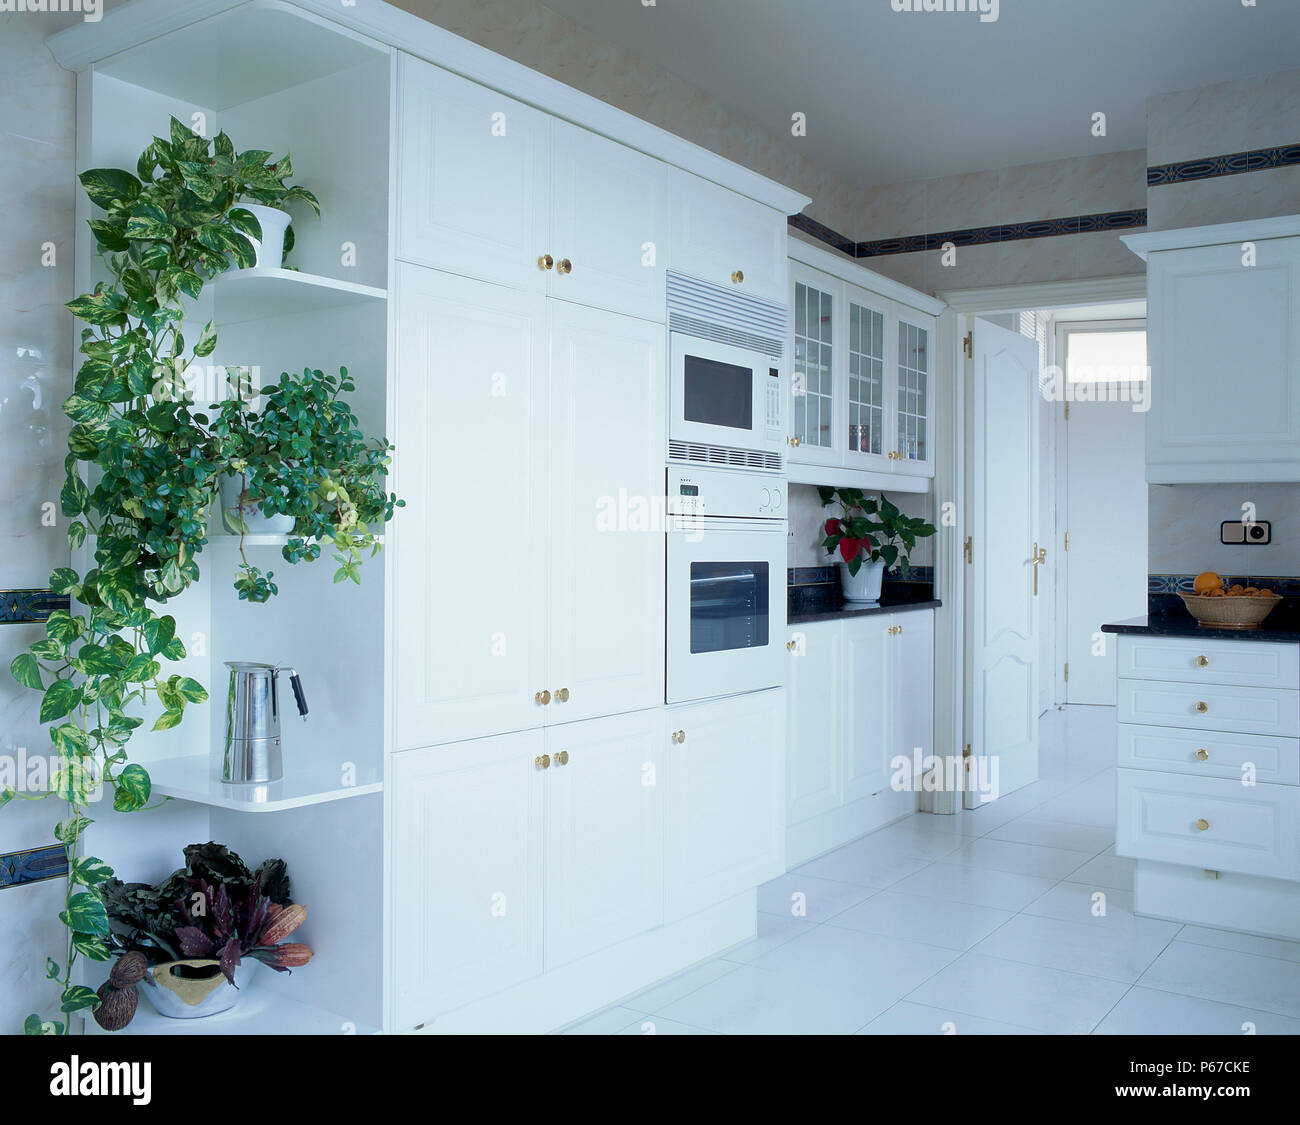 Kitchen Storage Unit Stock Photos & Kitchen Storage Unit Stock ...